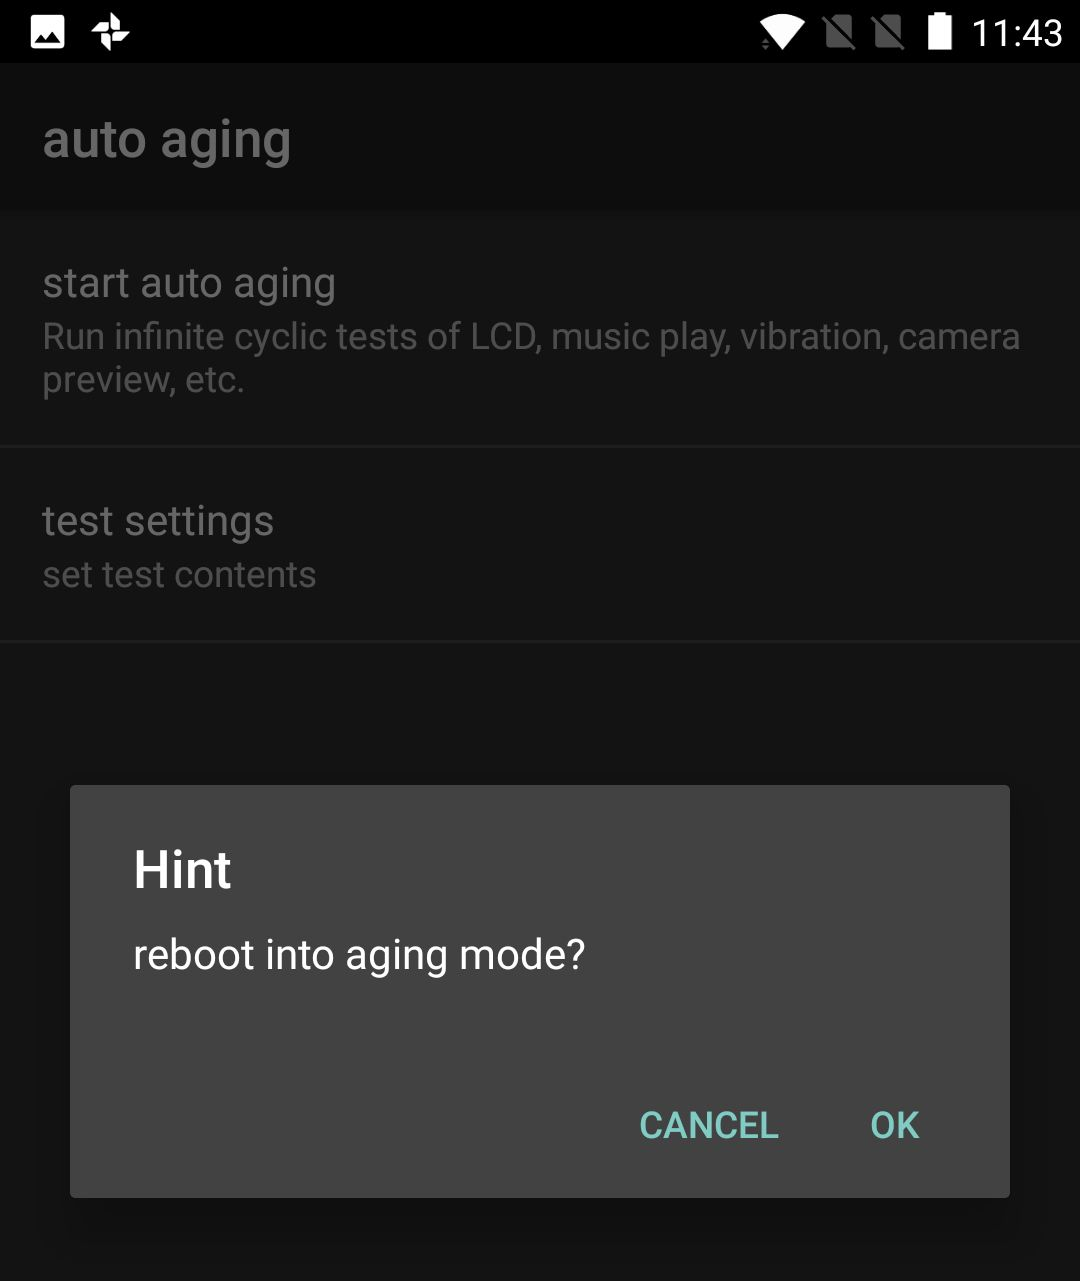 Another Dangerous App Found on OnePlus Phones | Tom's Guide